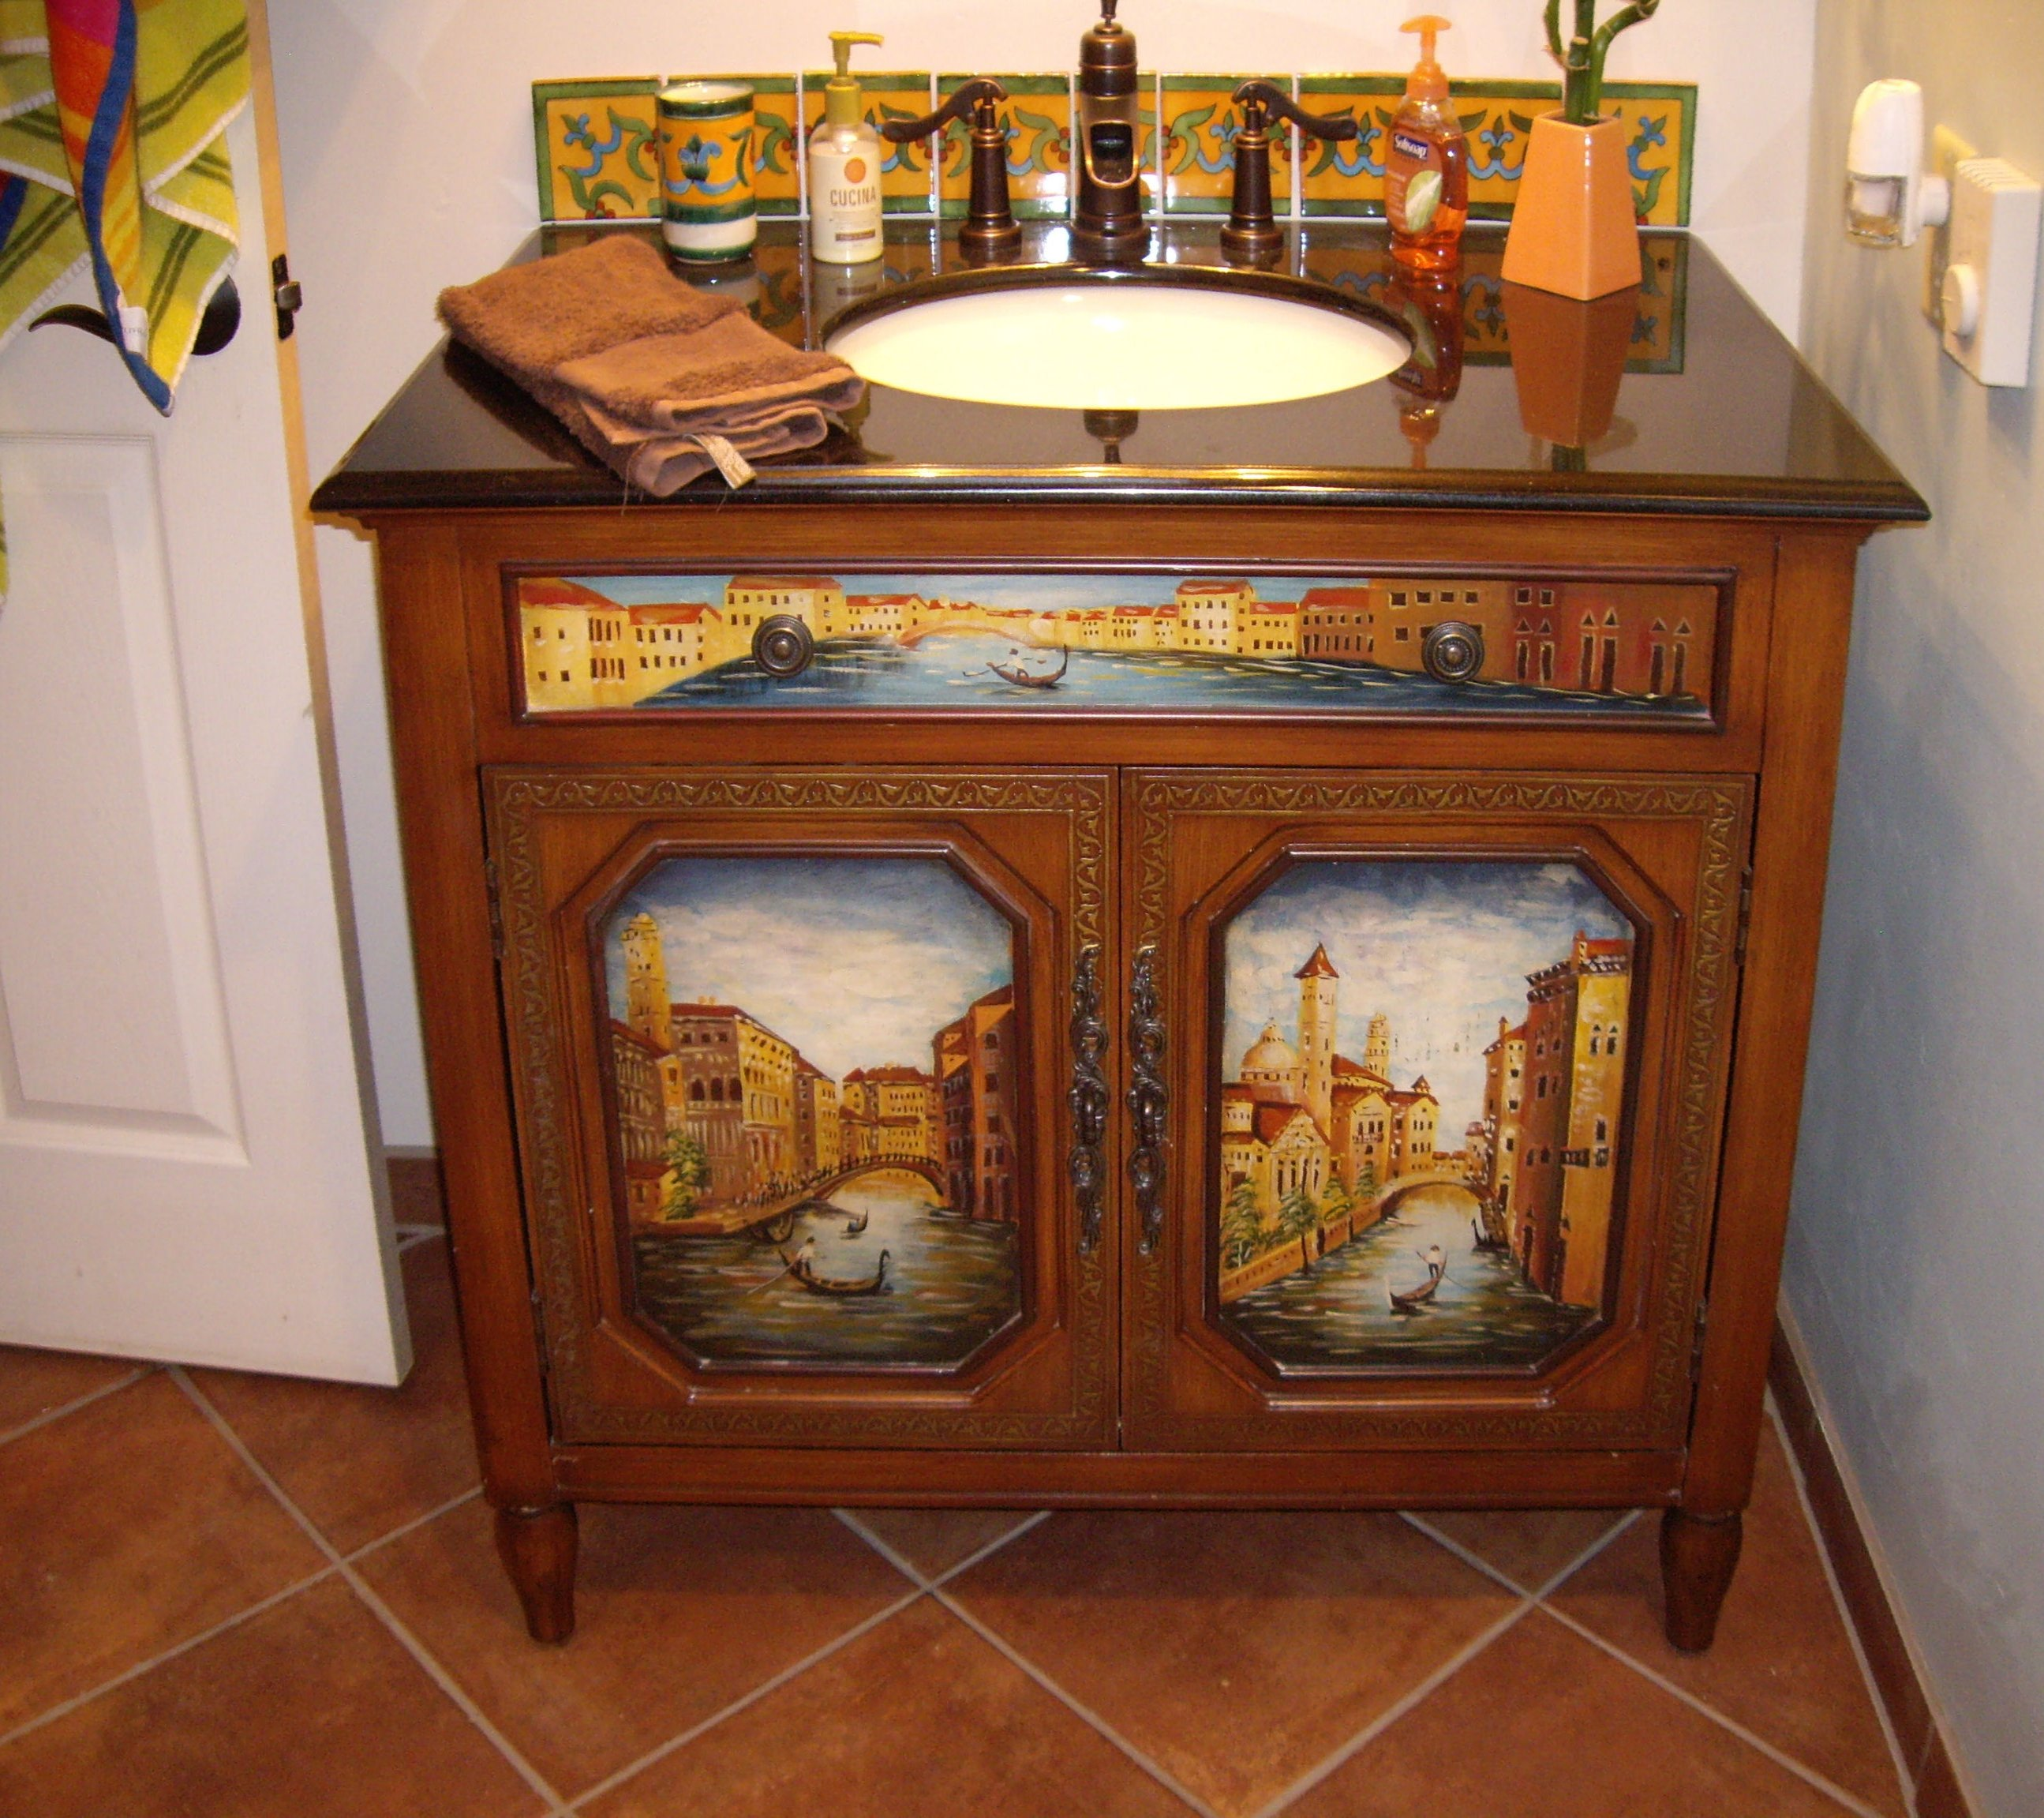 Liz Talavera Tile In A Vanity Backsplash Mexican Home Decor Projects Gallery